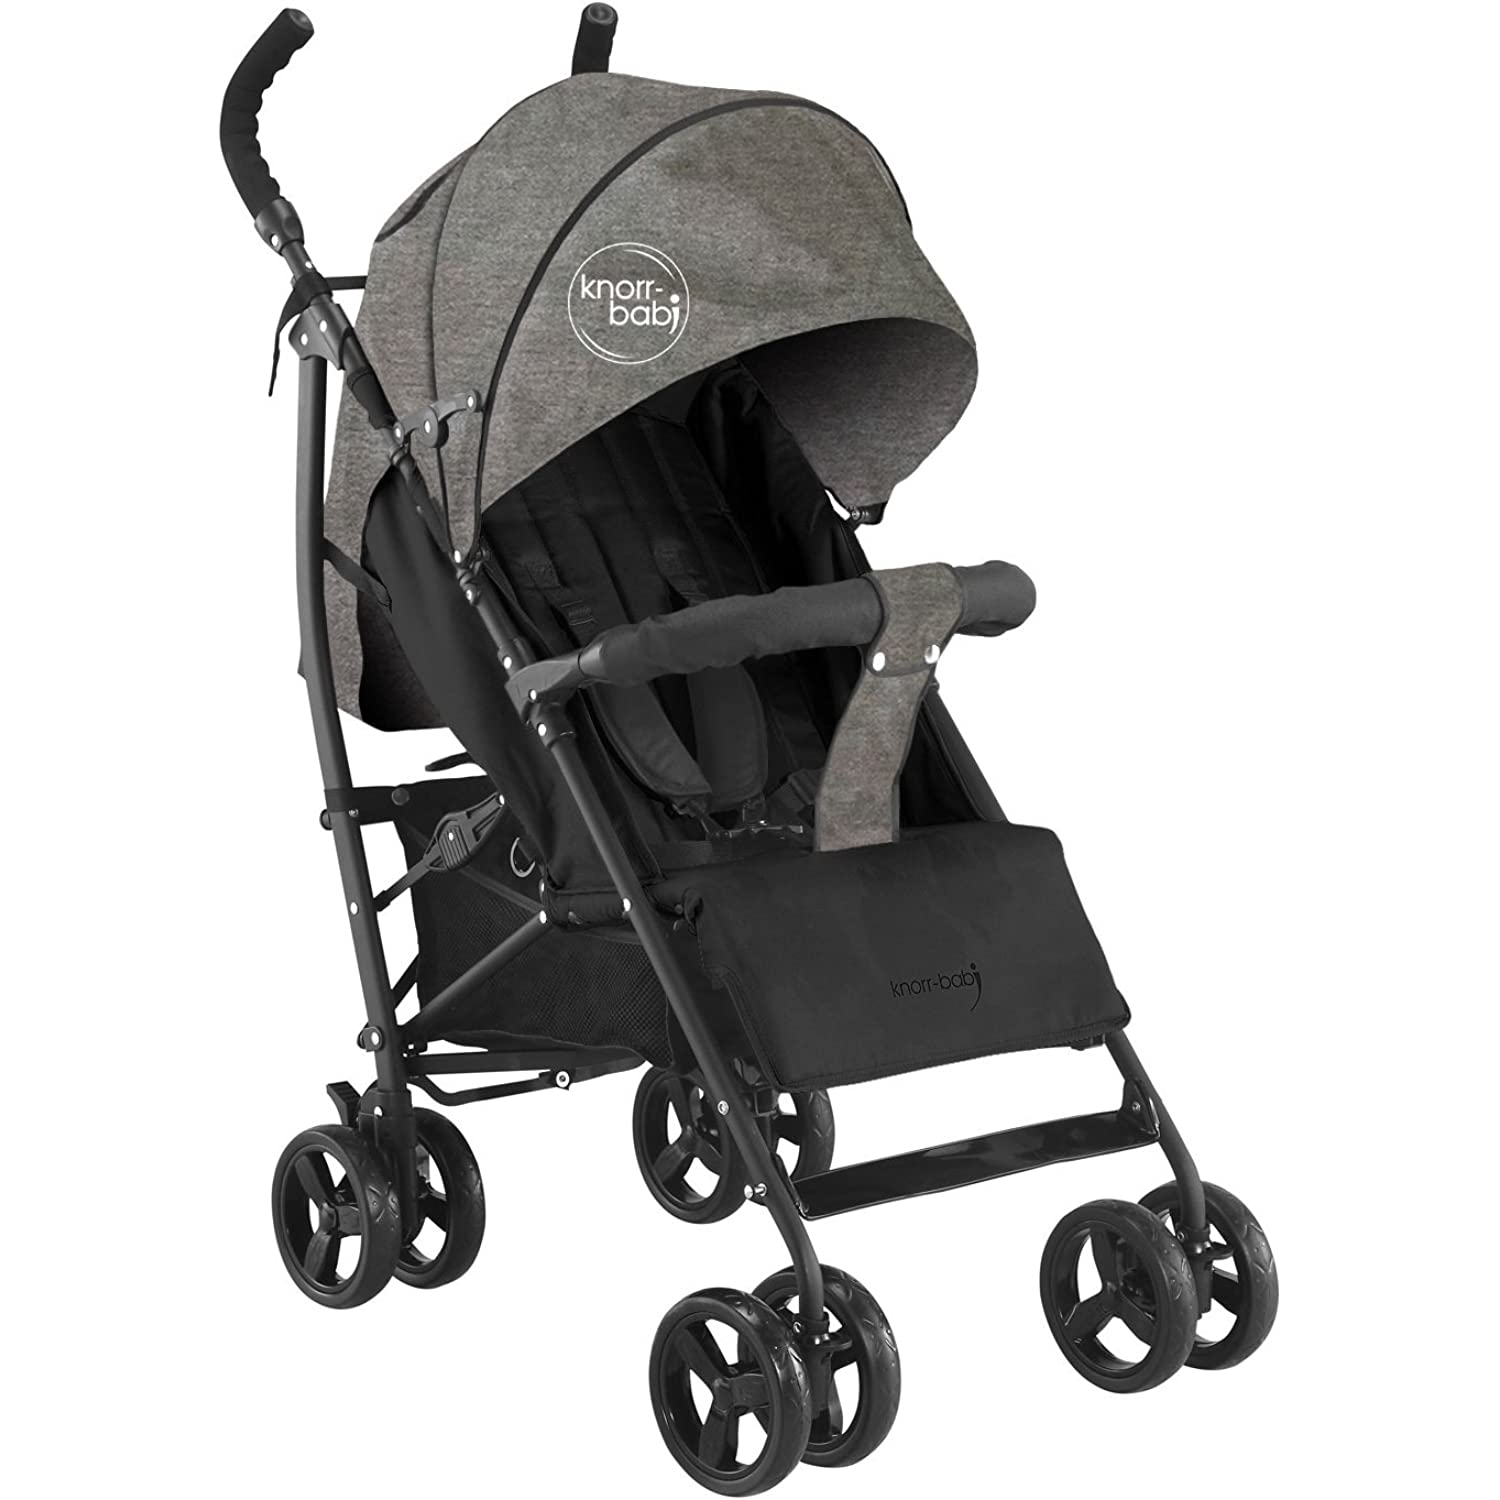 knorr-baby 848550